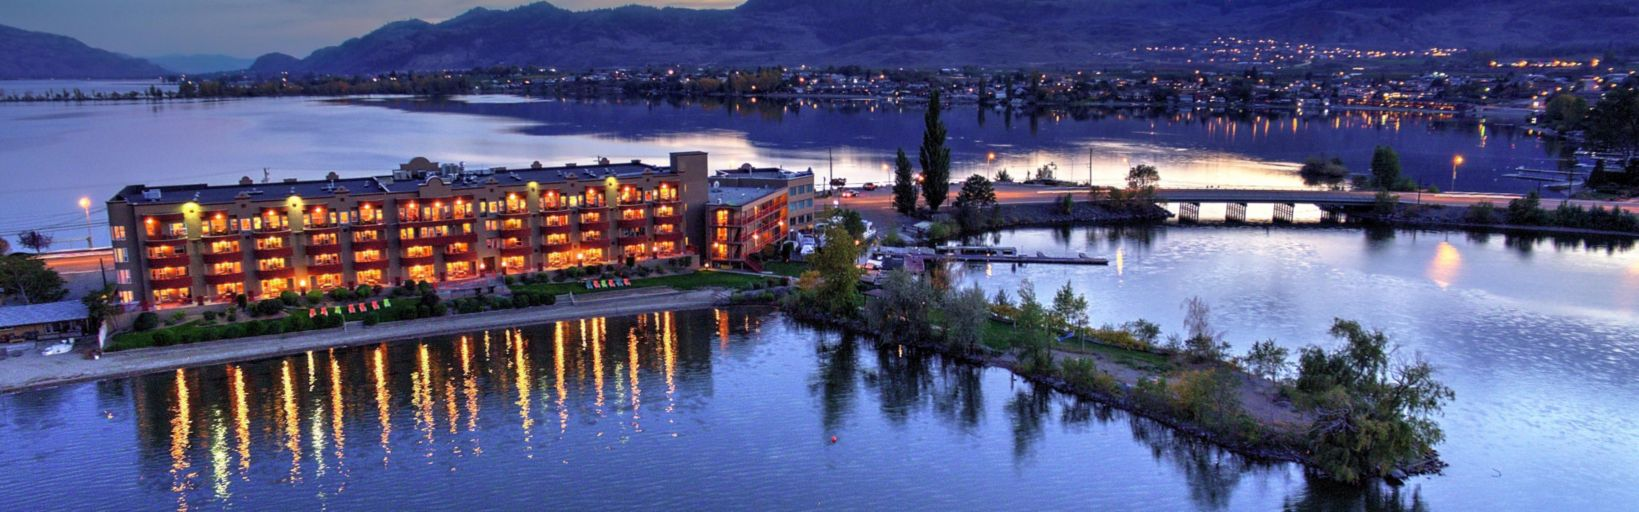 Hotel Inn Osoyoos Beach Exterior View Evenings On The Side